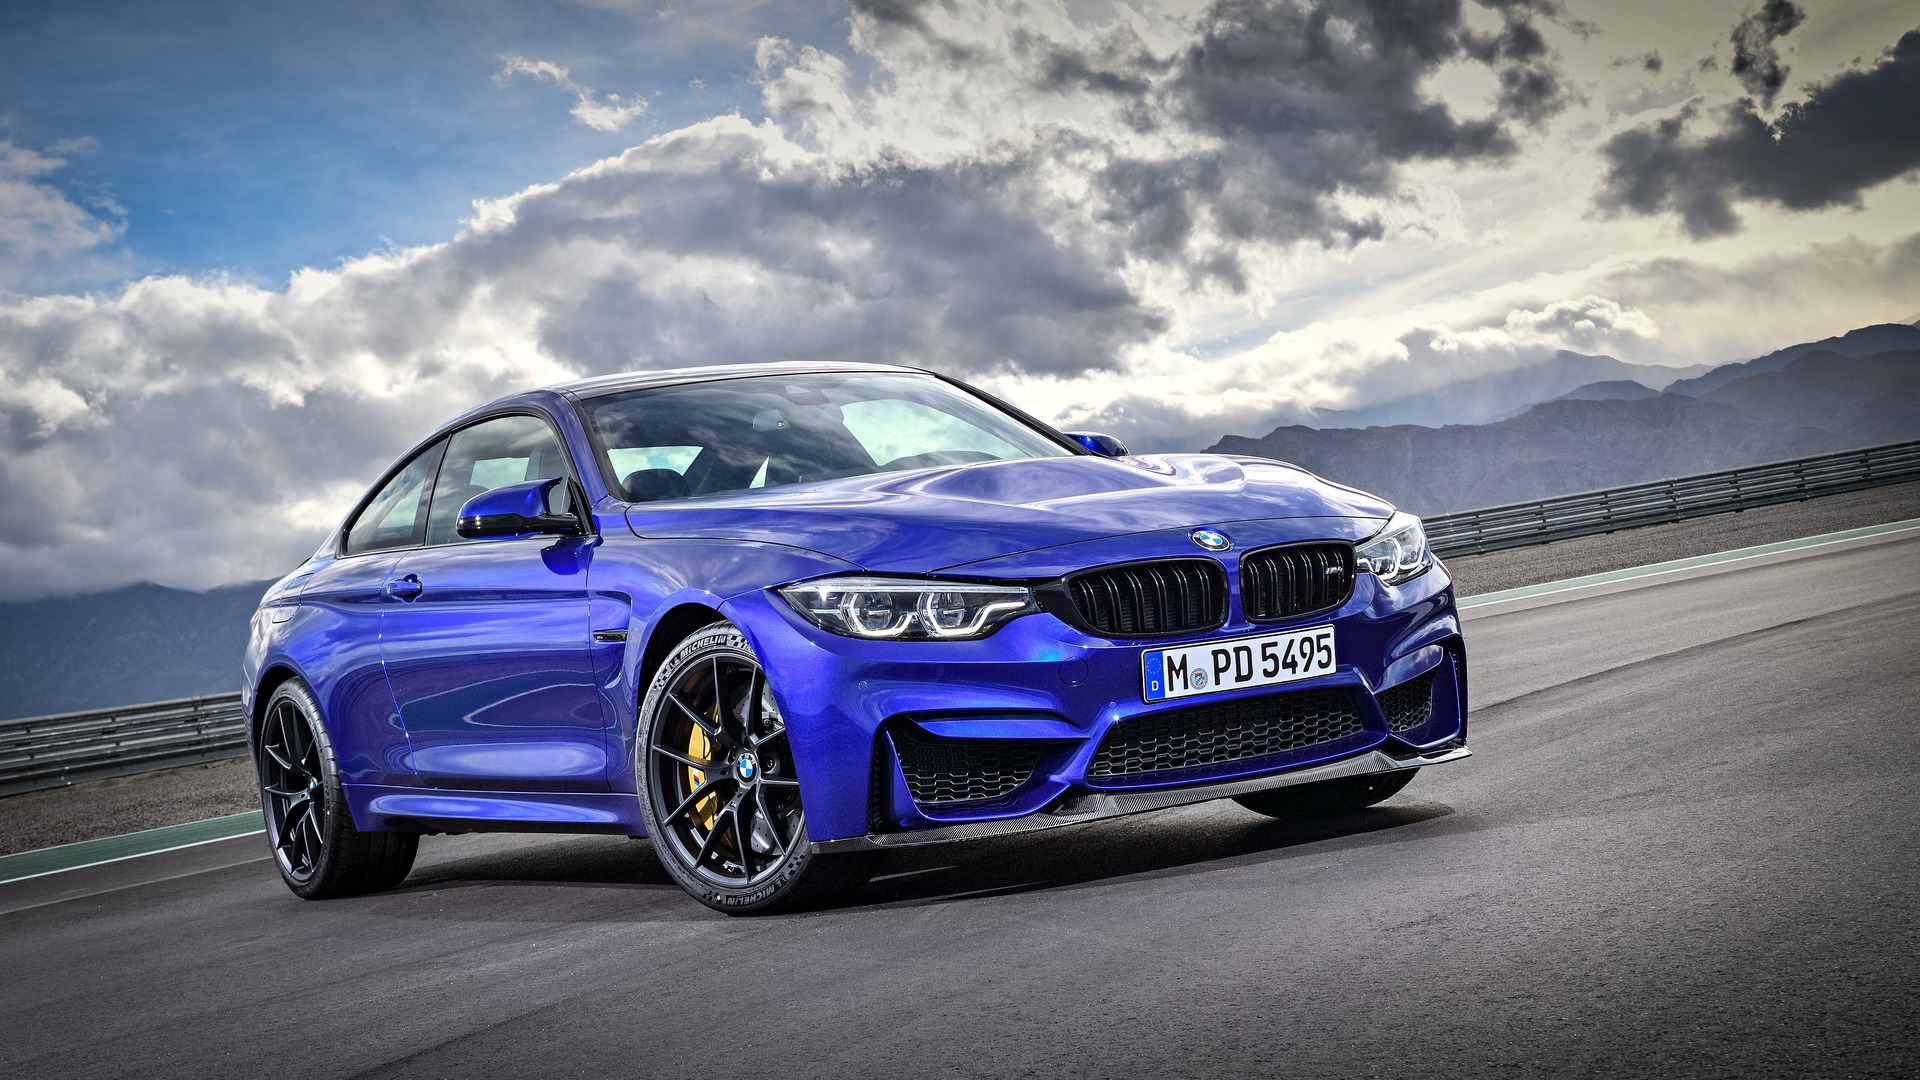 14 All New 2020 BMW M4 Gts Prices